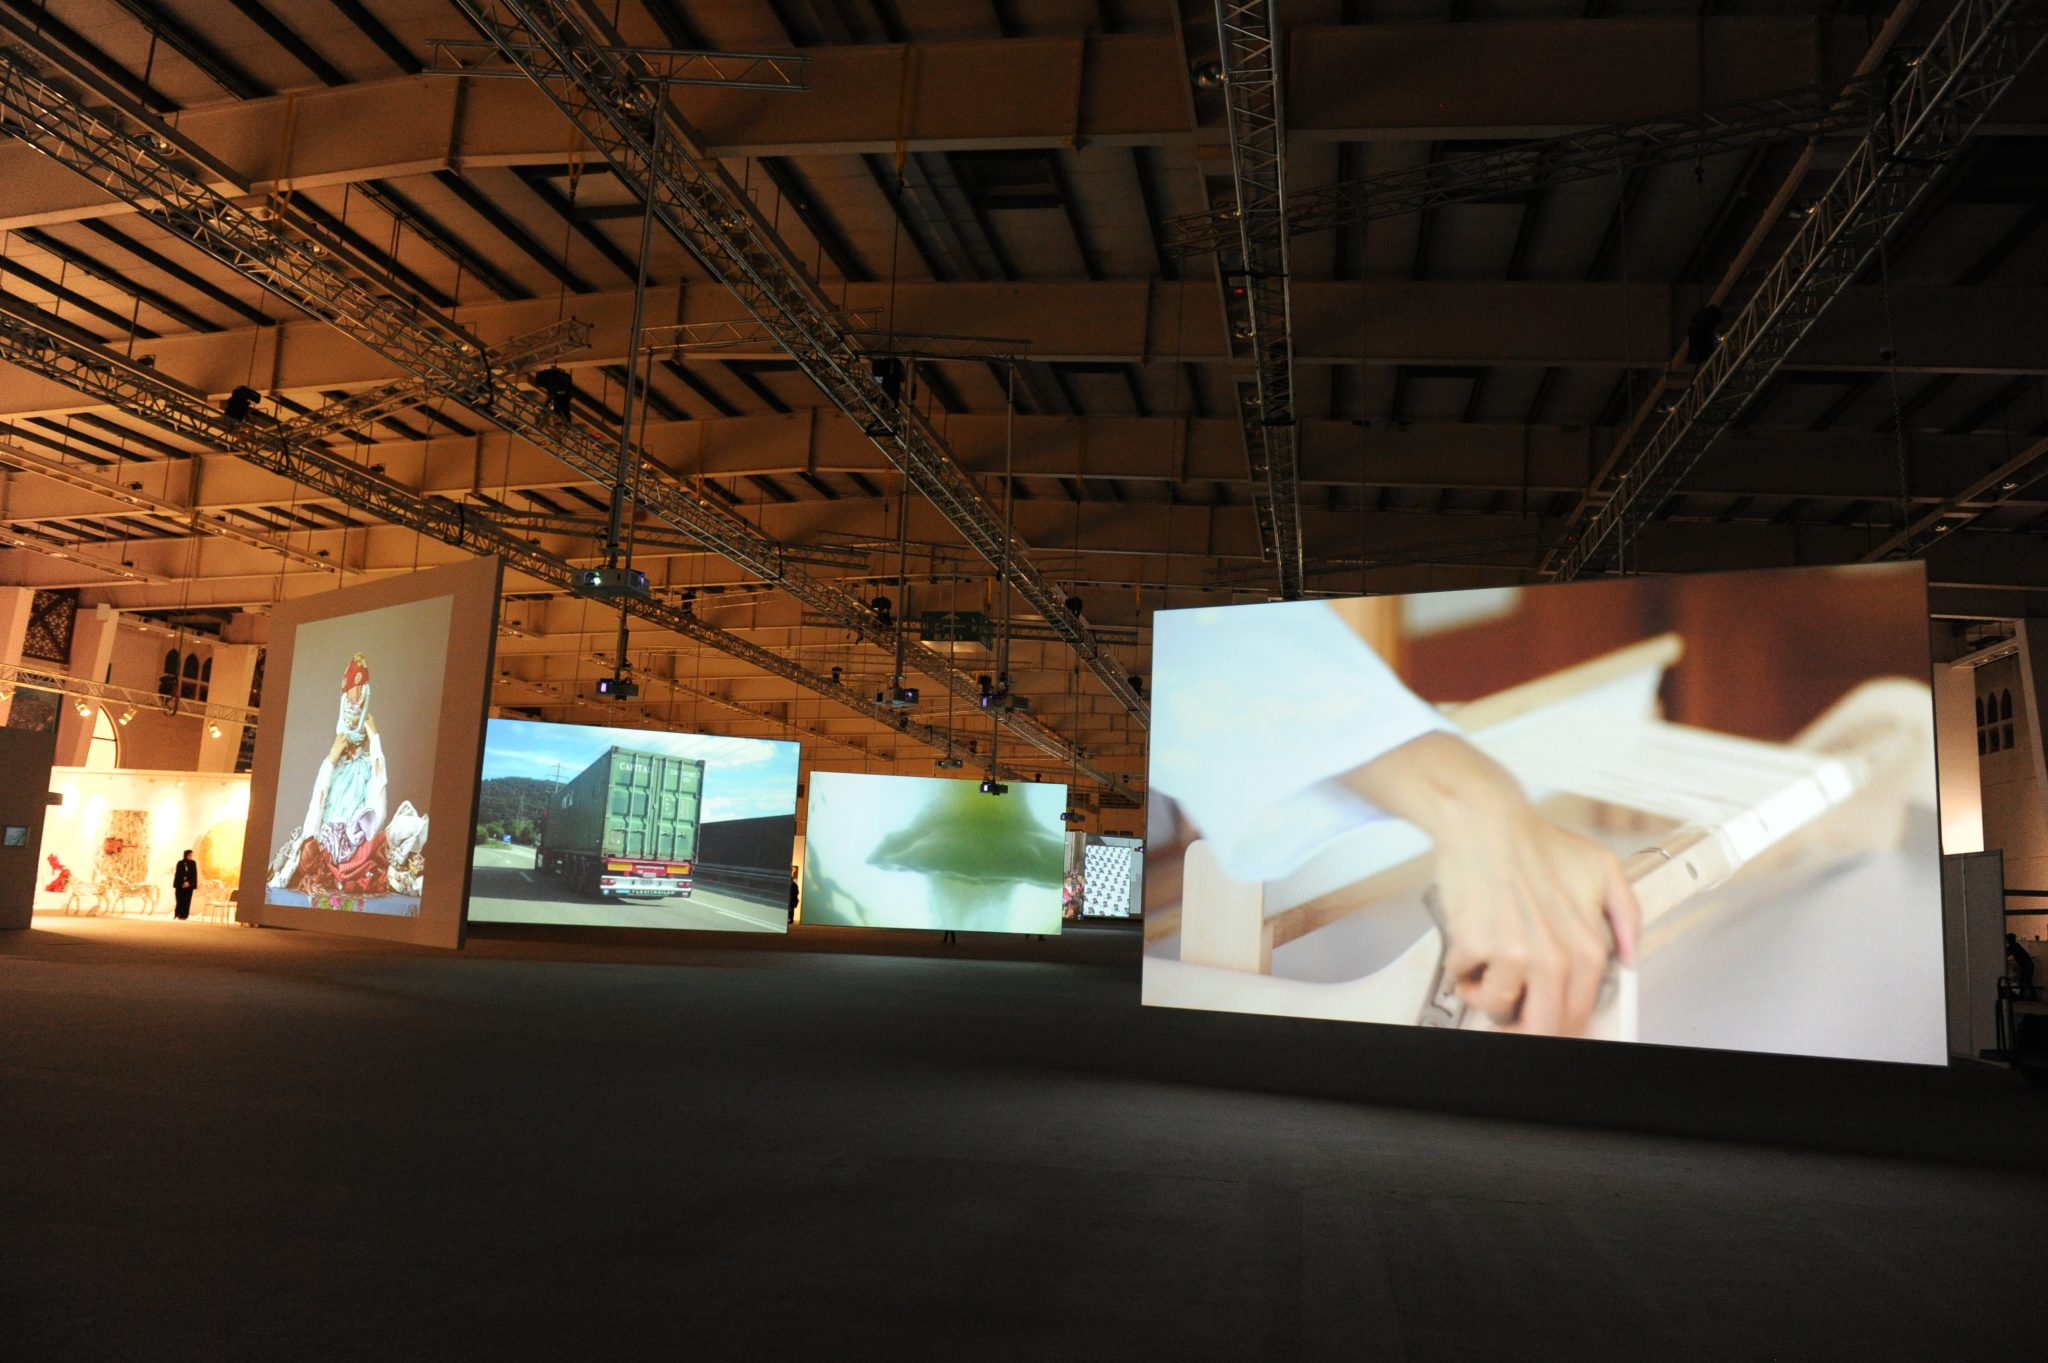 'Floating World' Video Installations on 32 huge screens at ArtBAB